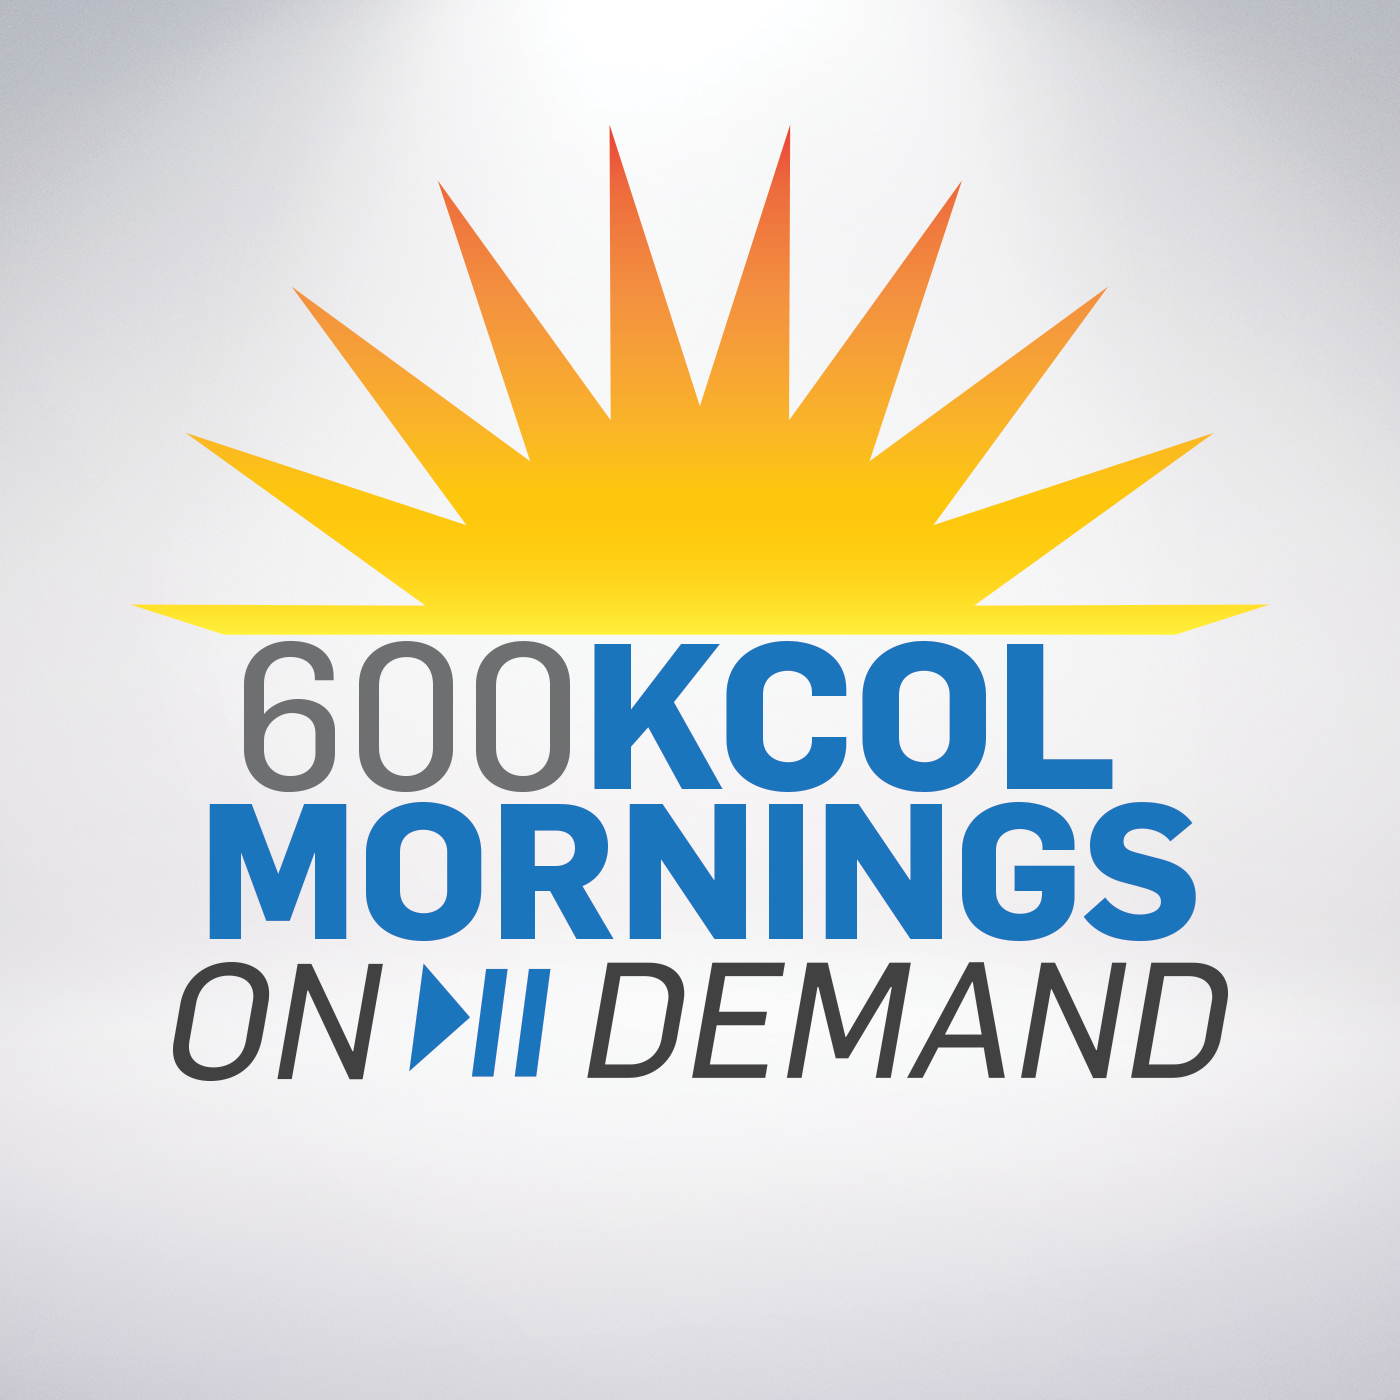 1/14 Robert Blha on KCOL Mornings